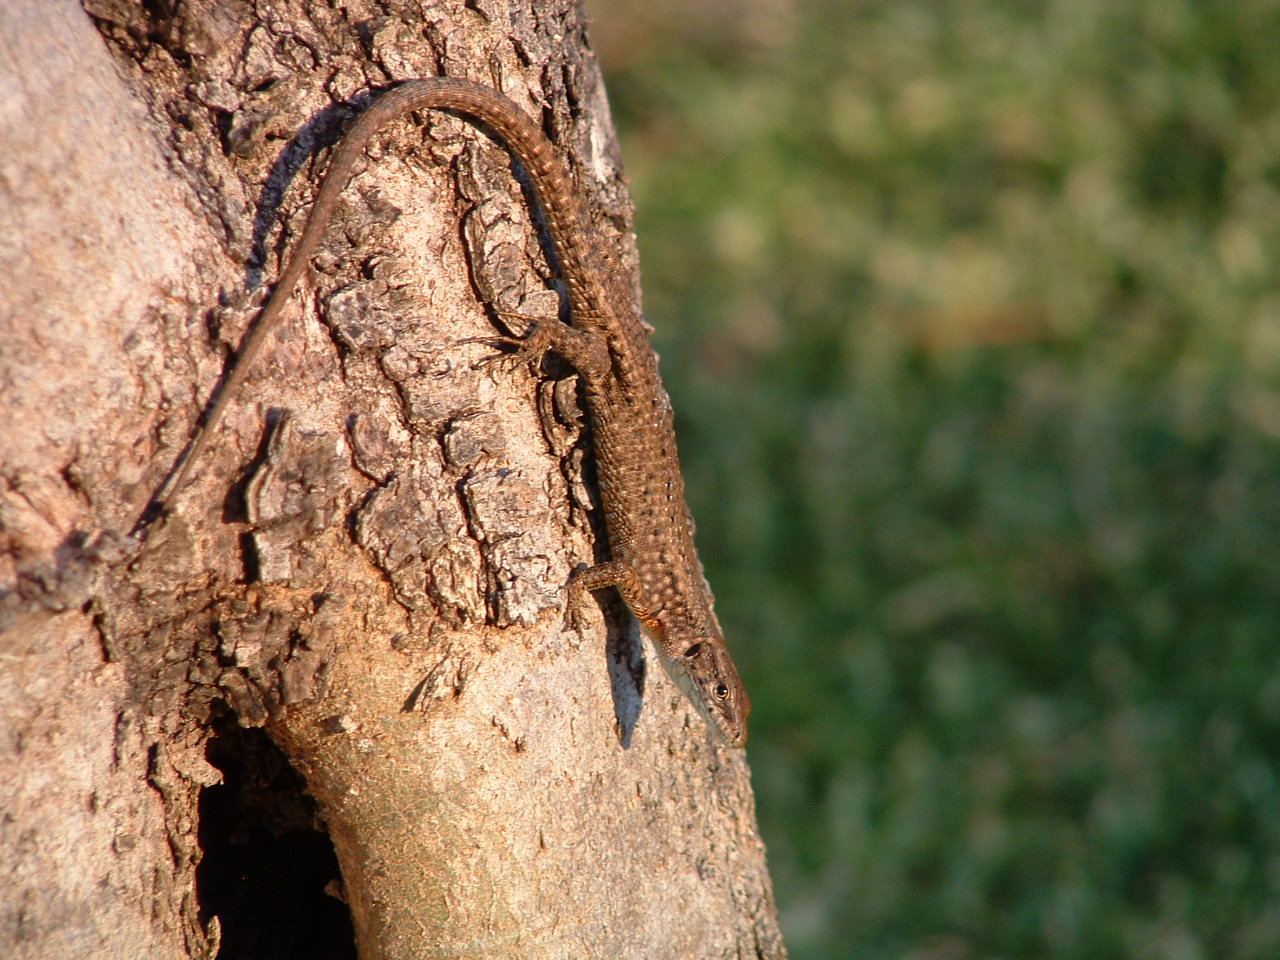 Lizard on tree